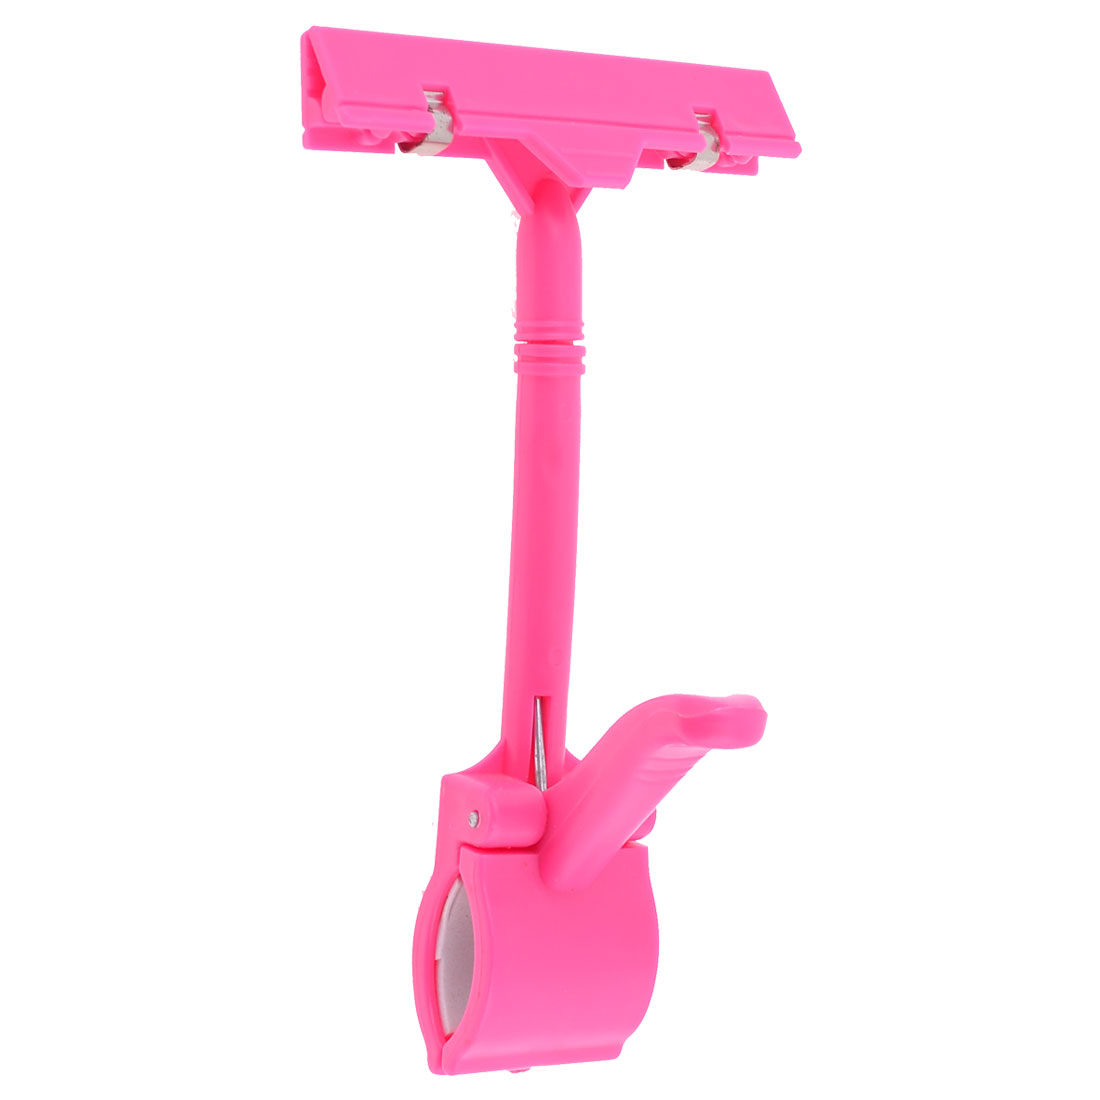 Exhibitions Jointed Dual Clamps Fuchsia Plastic Pop Thumb Display Clip